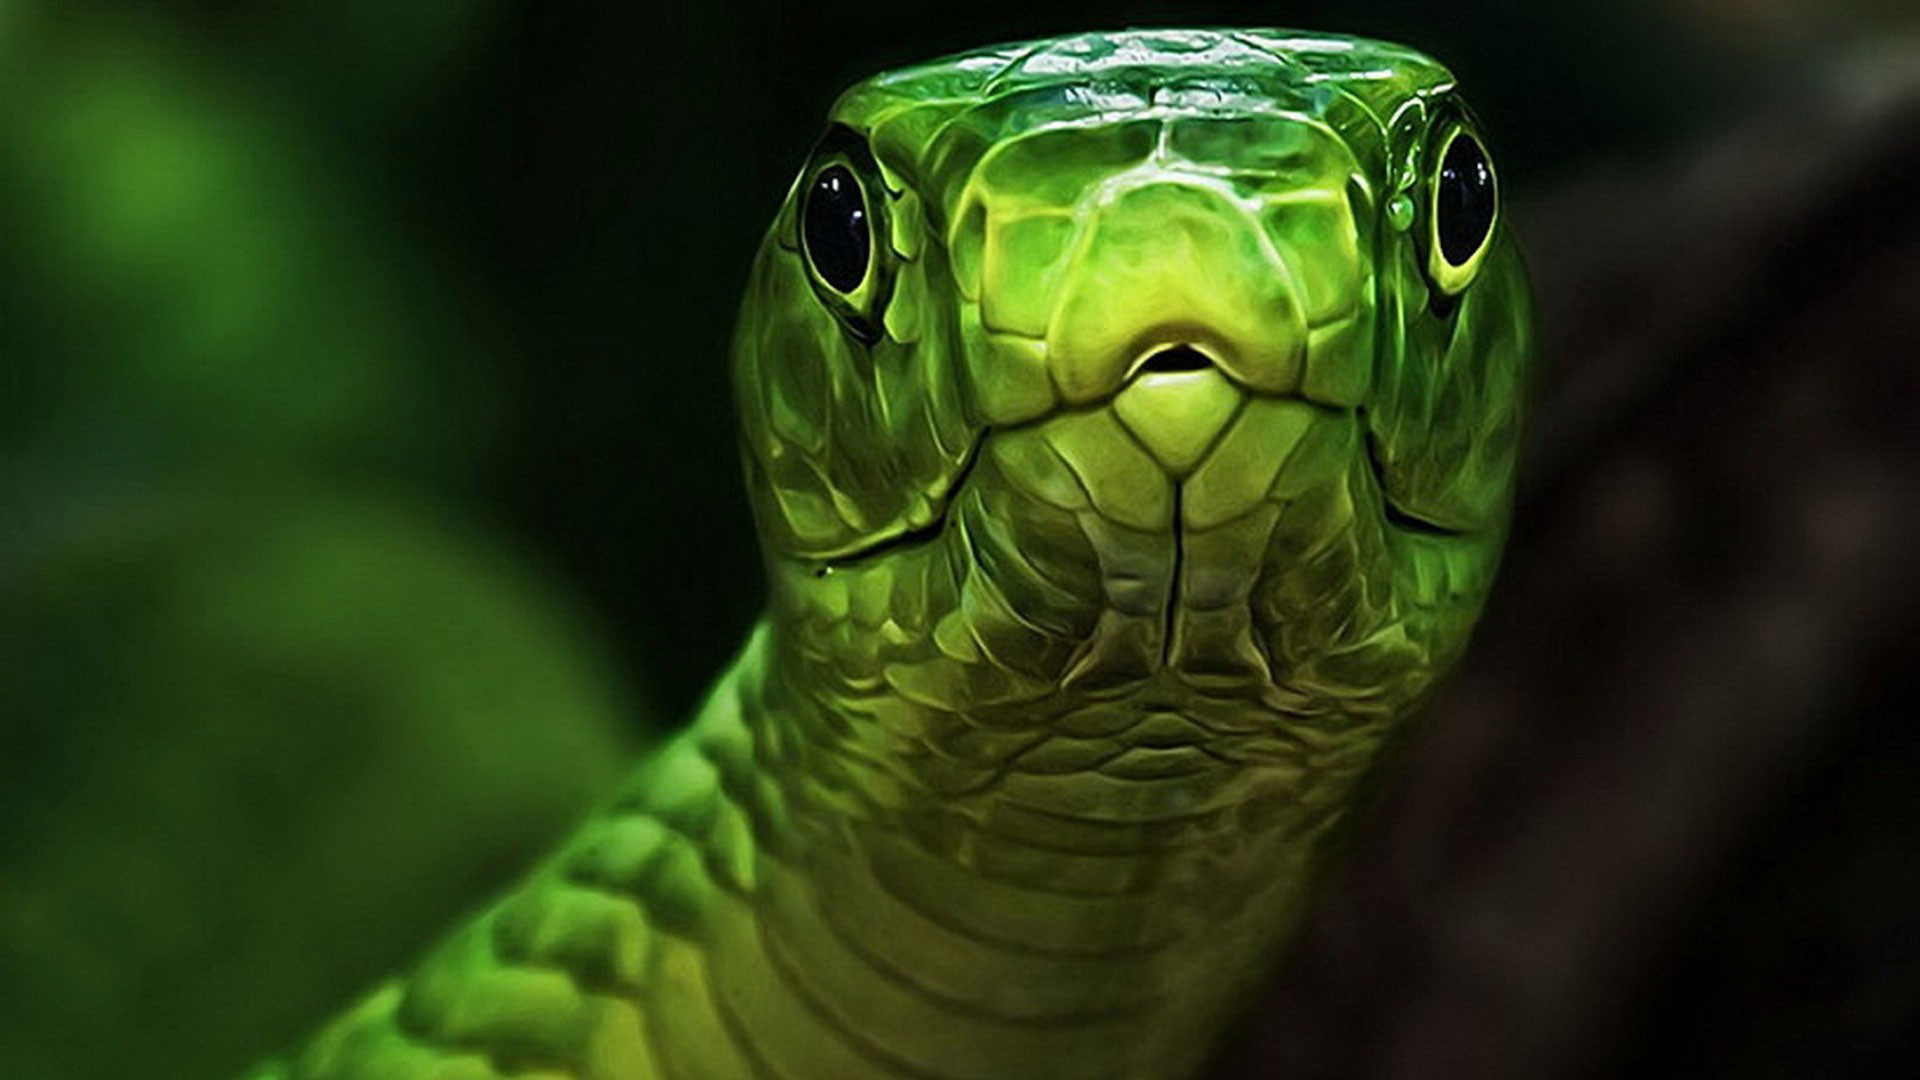 1920x1080 hd-pics-photos-green-snake-reptiles-nature-animals-